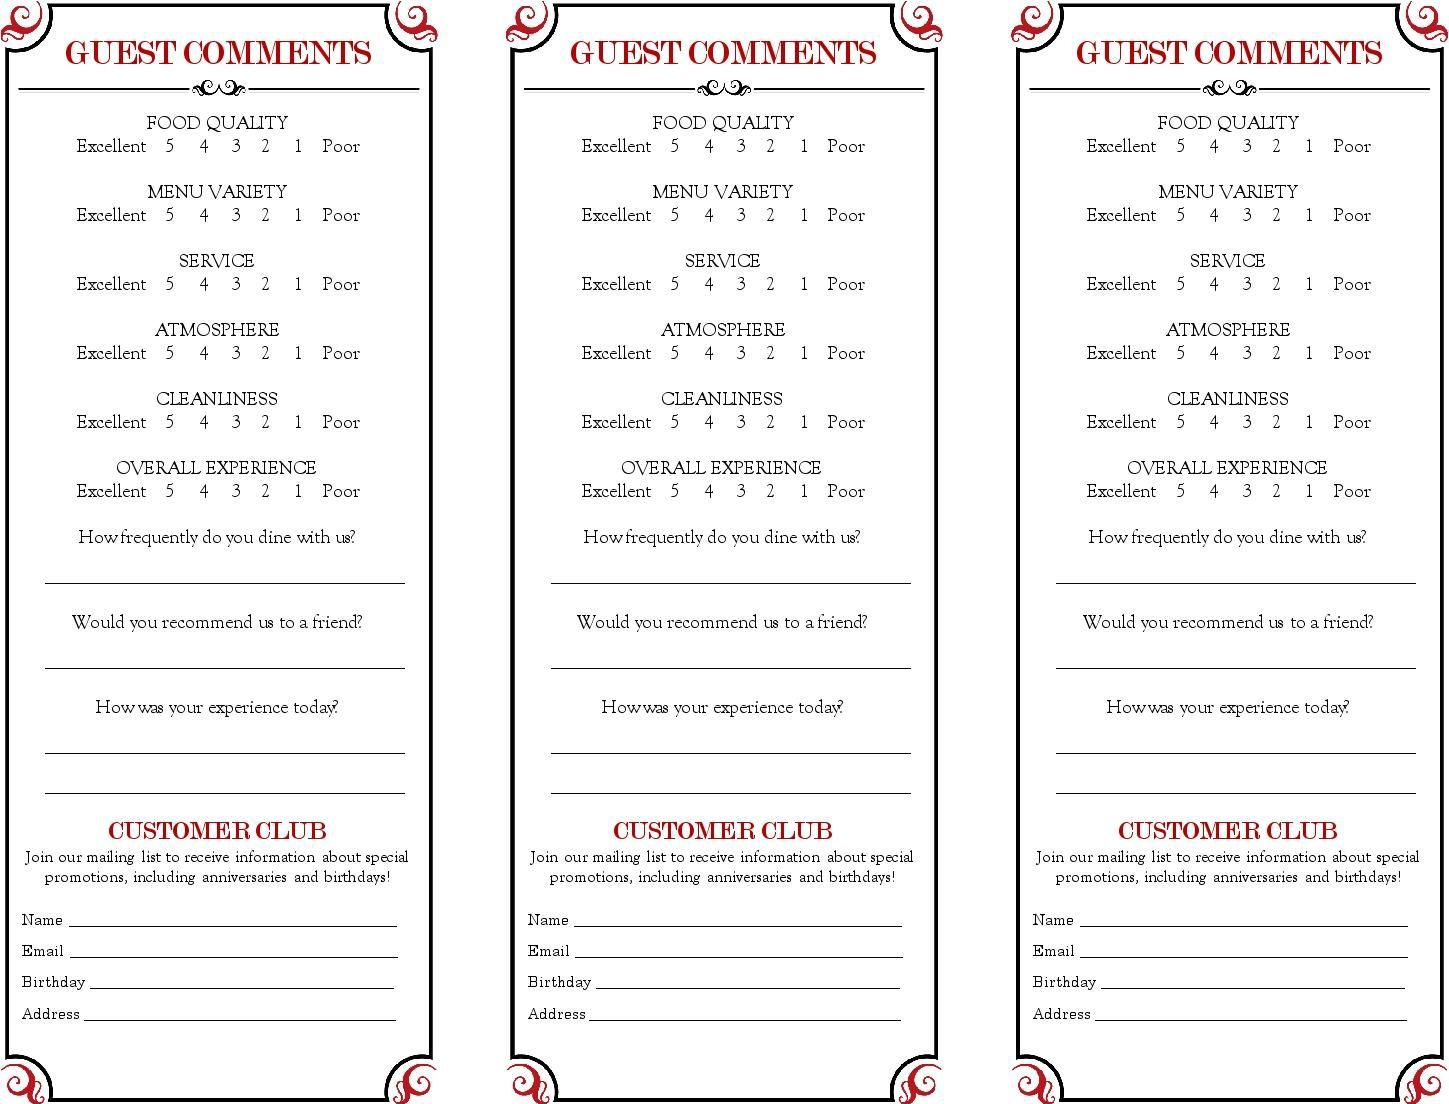 008 Fearsome Restaurant Comment Card Template For Word High Definition Full